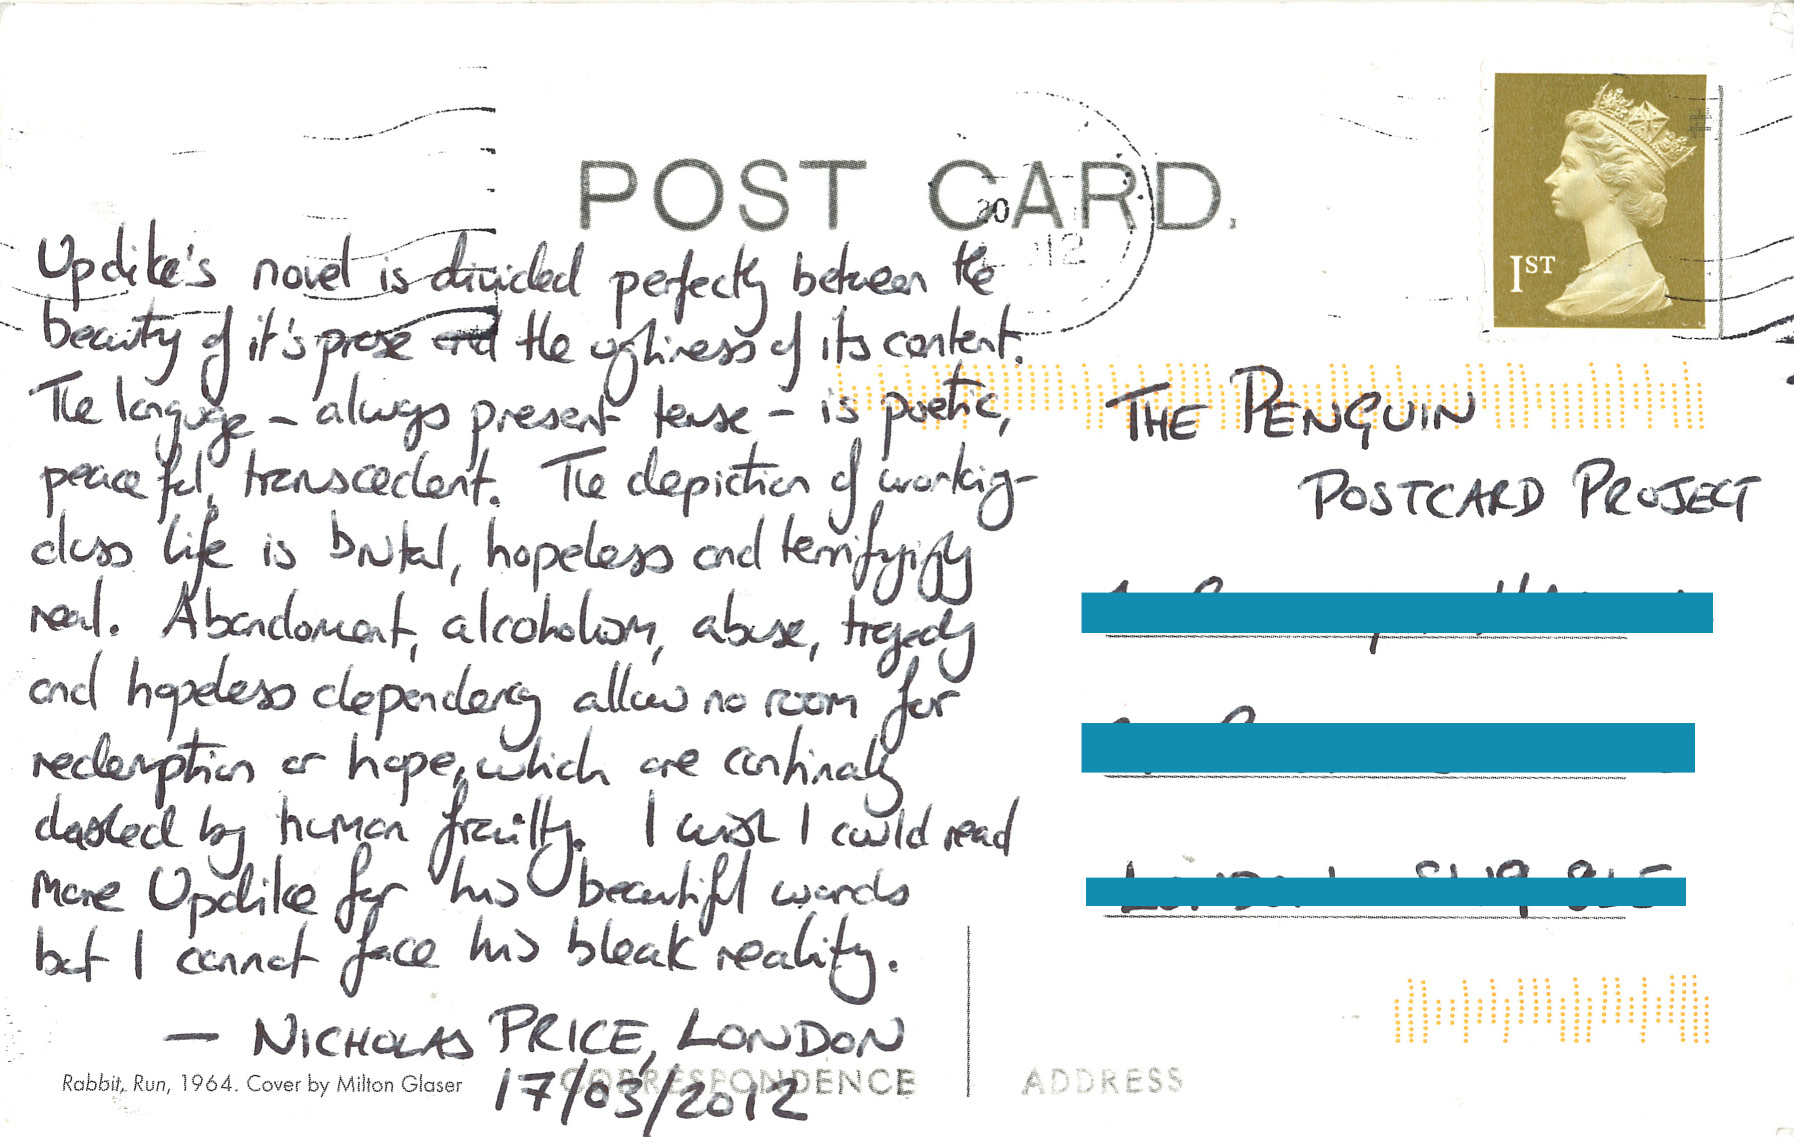 The Penguin Postcard Project